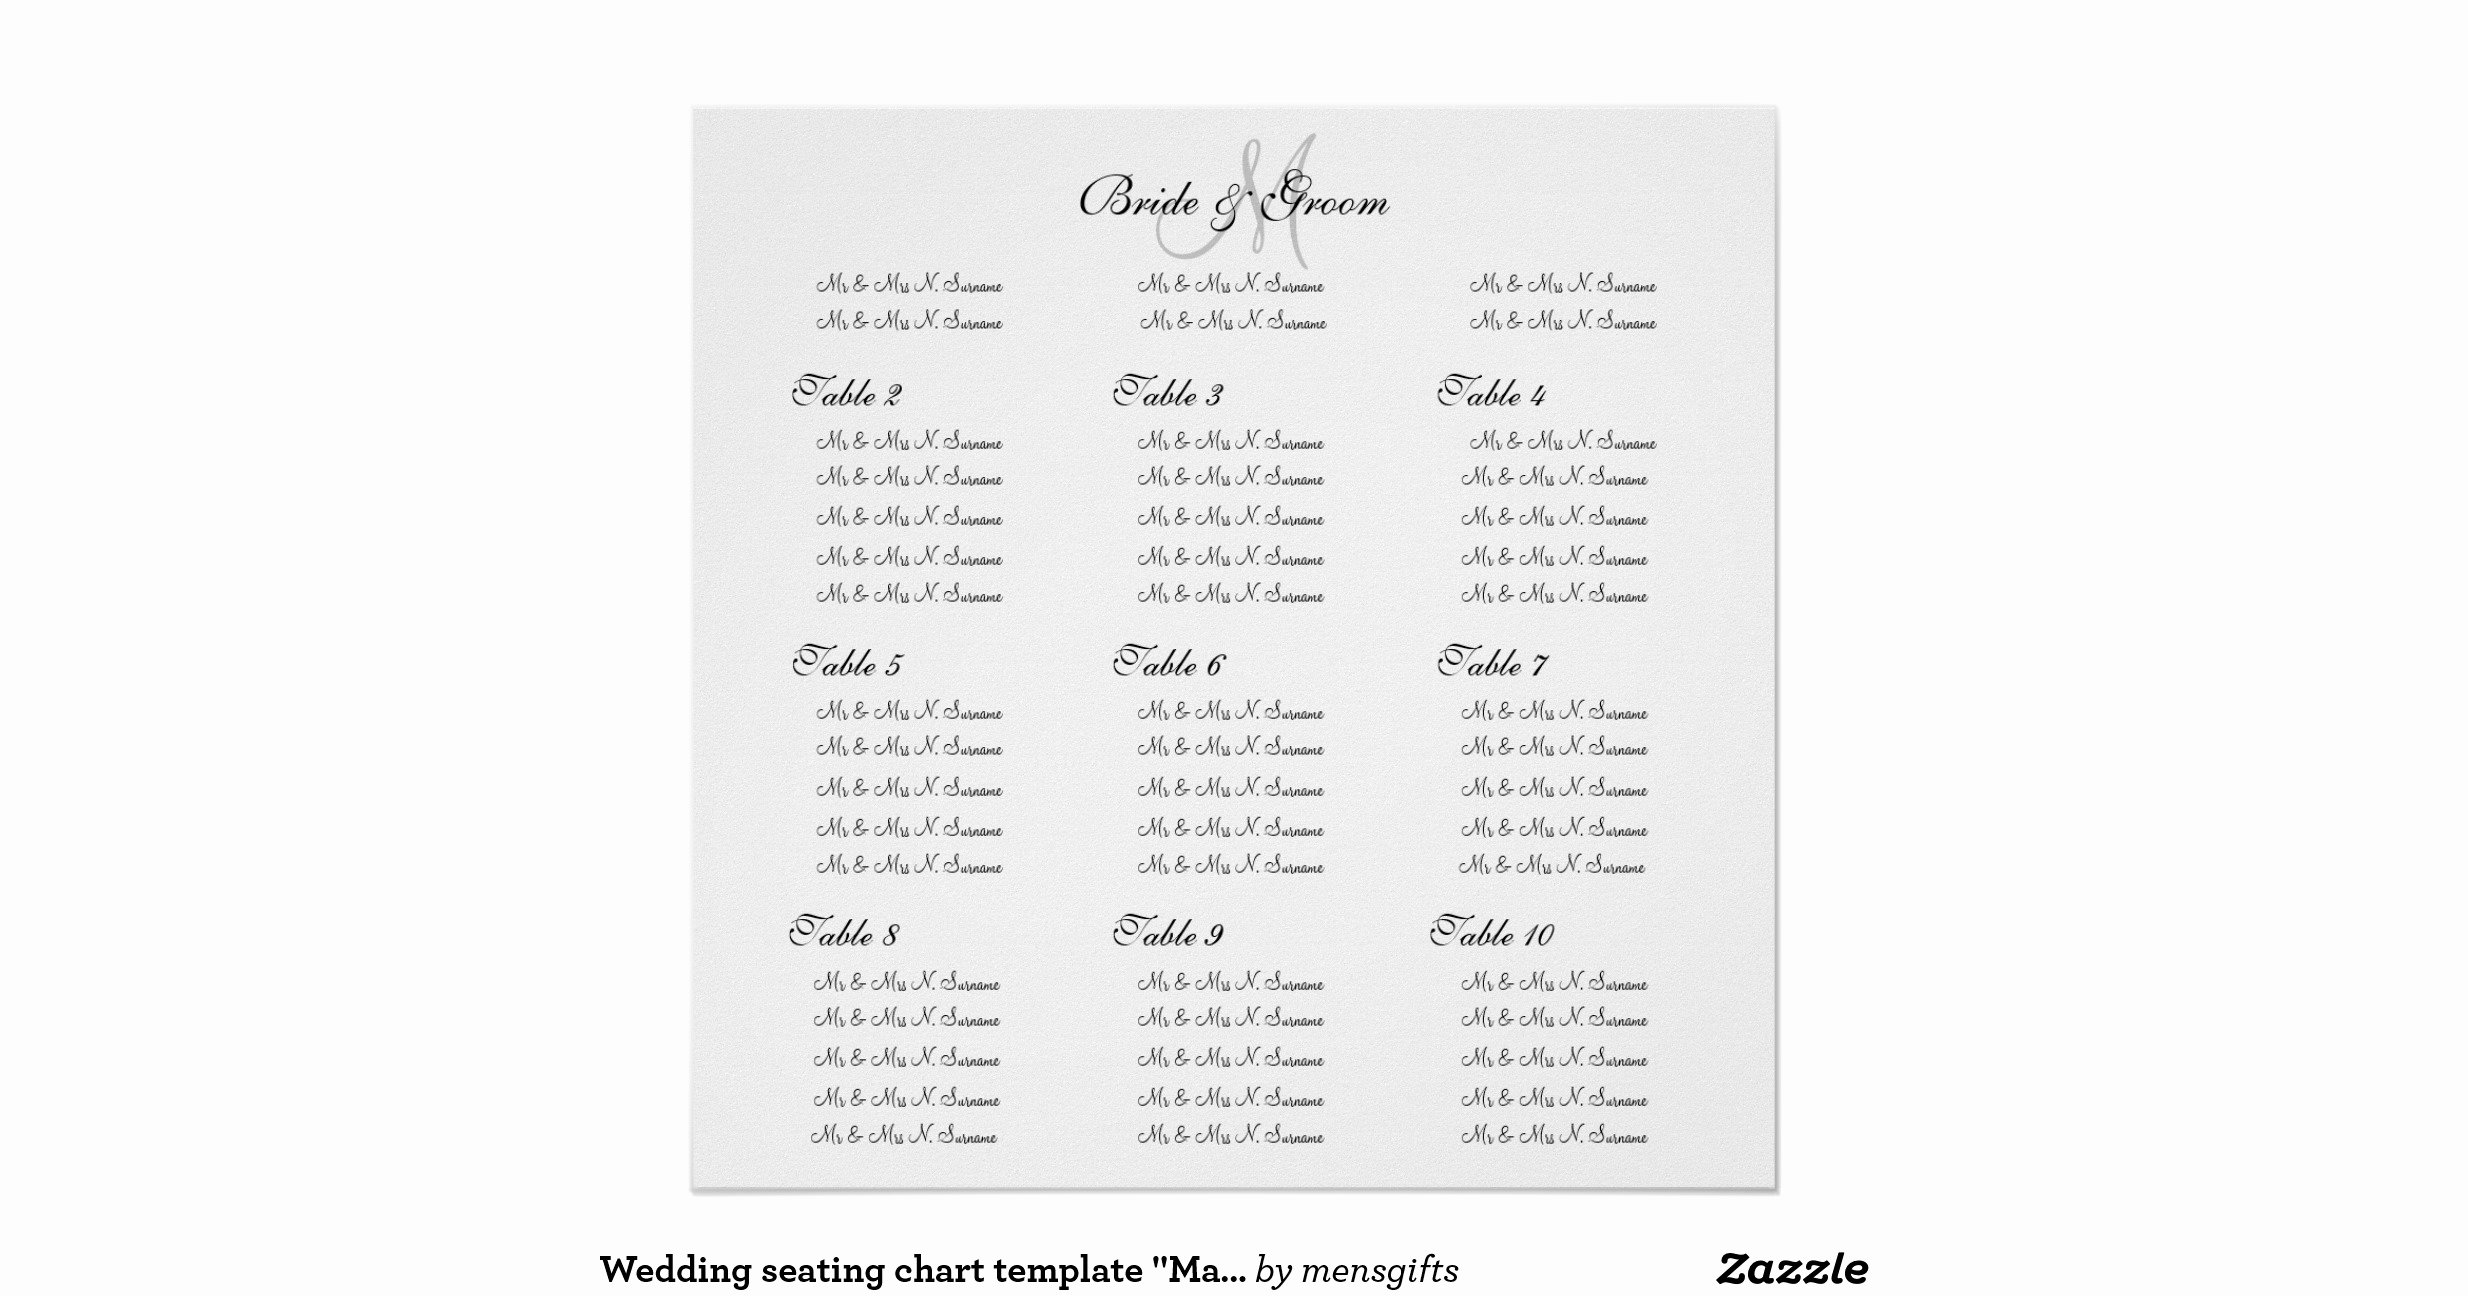 Seating Chart Poster Template Fresh Wedding Seating Chart Template Make Your Own Poster